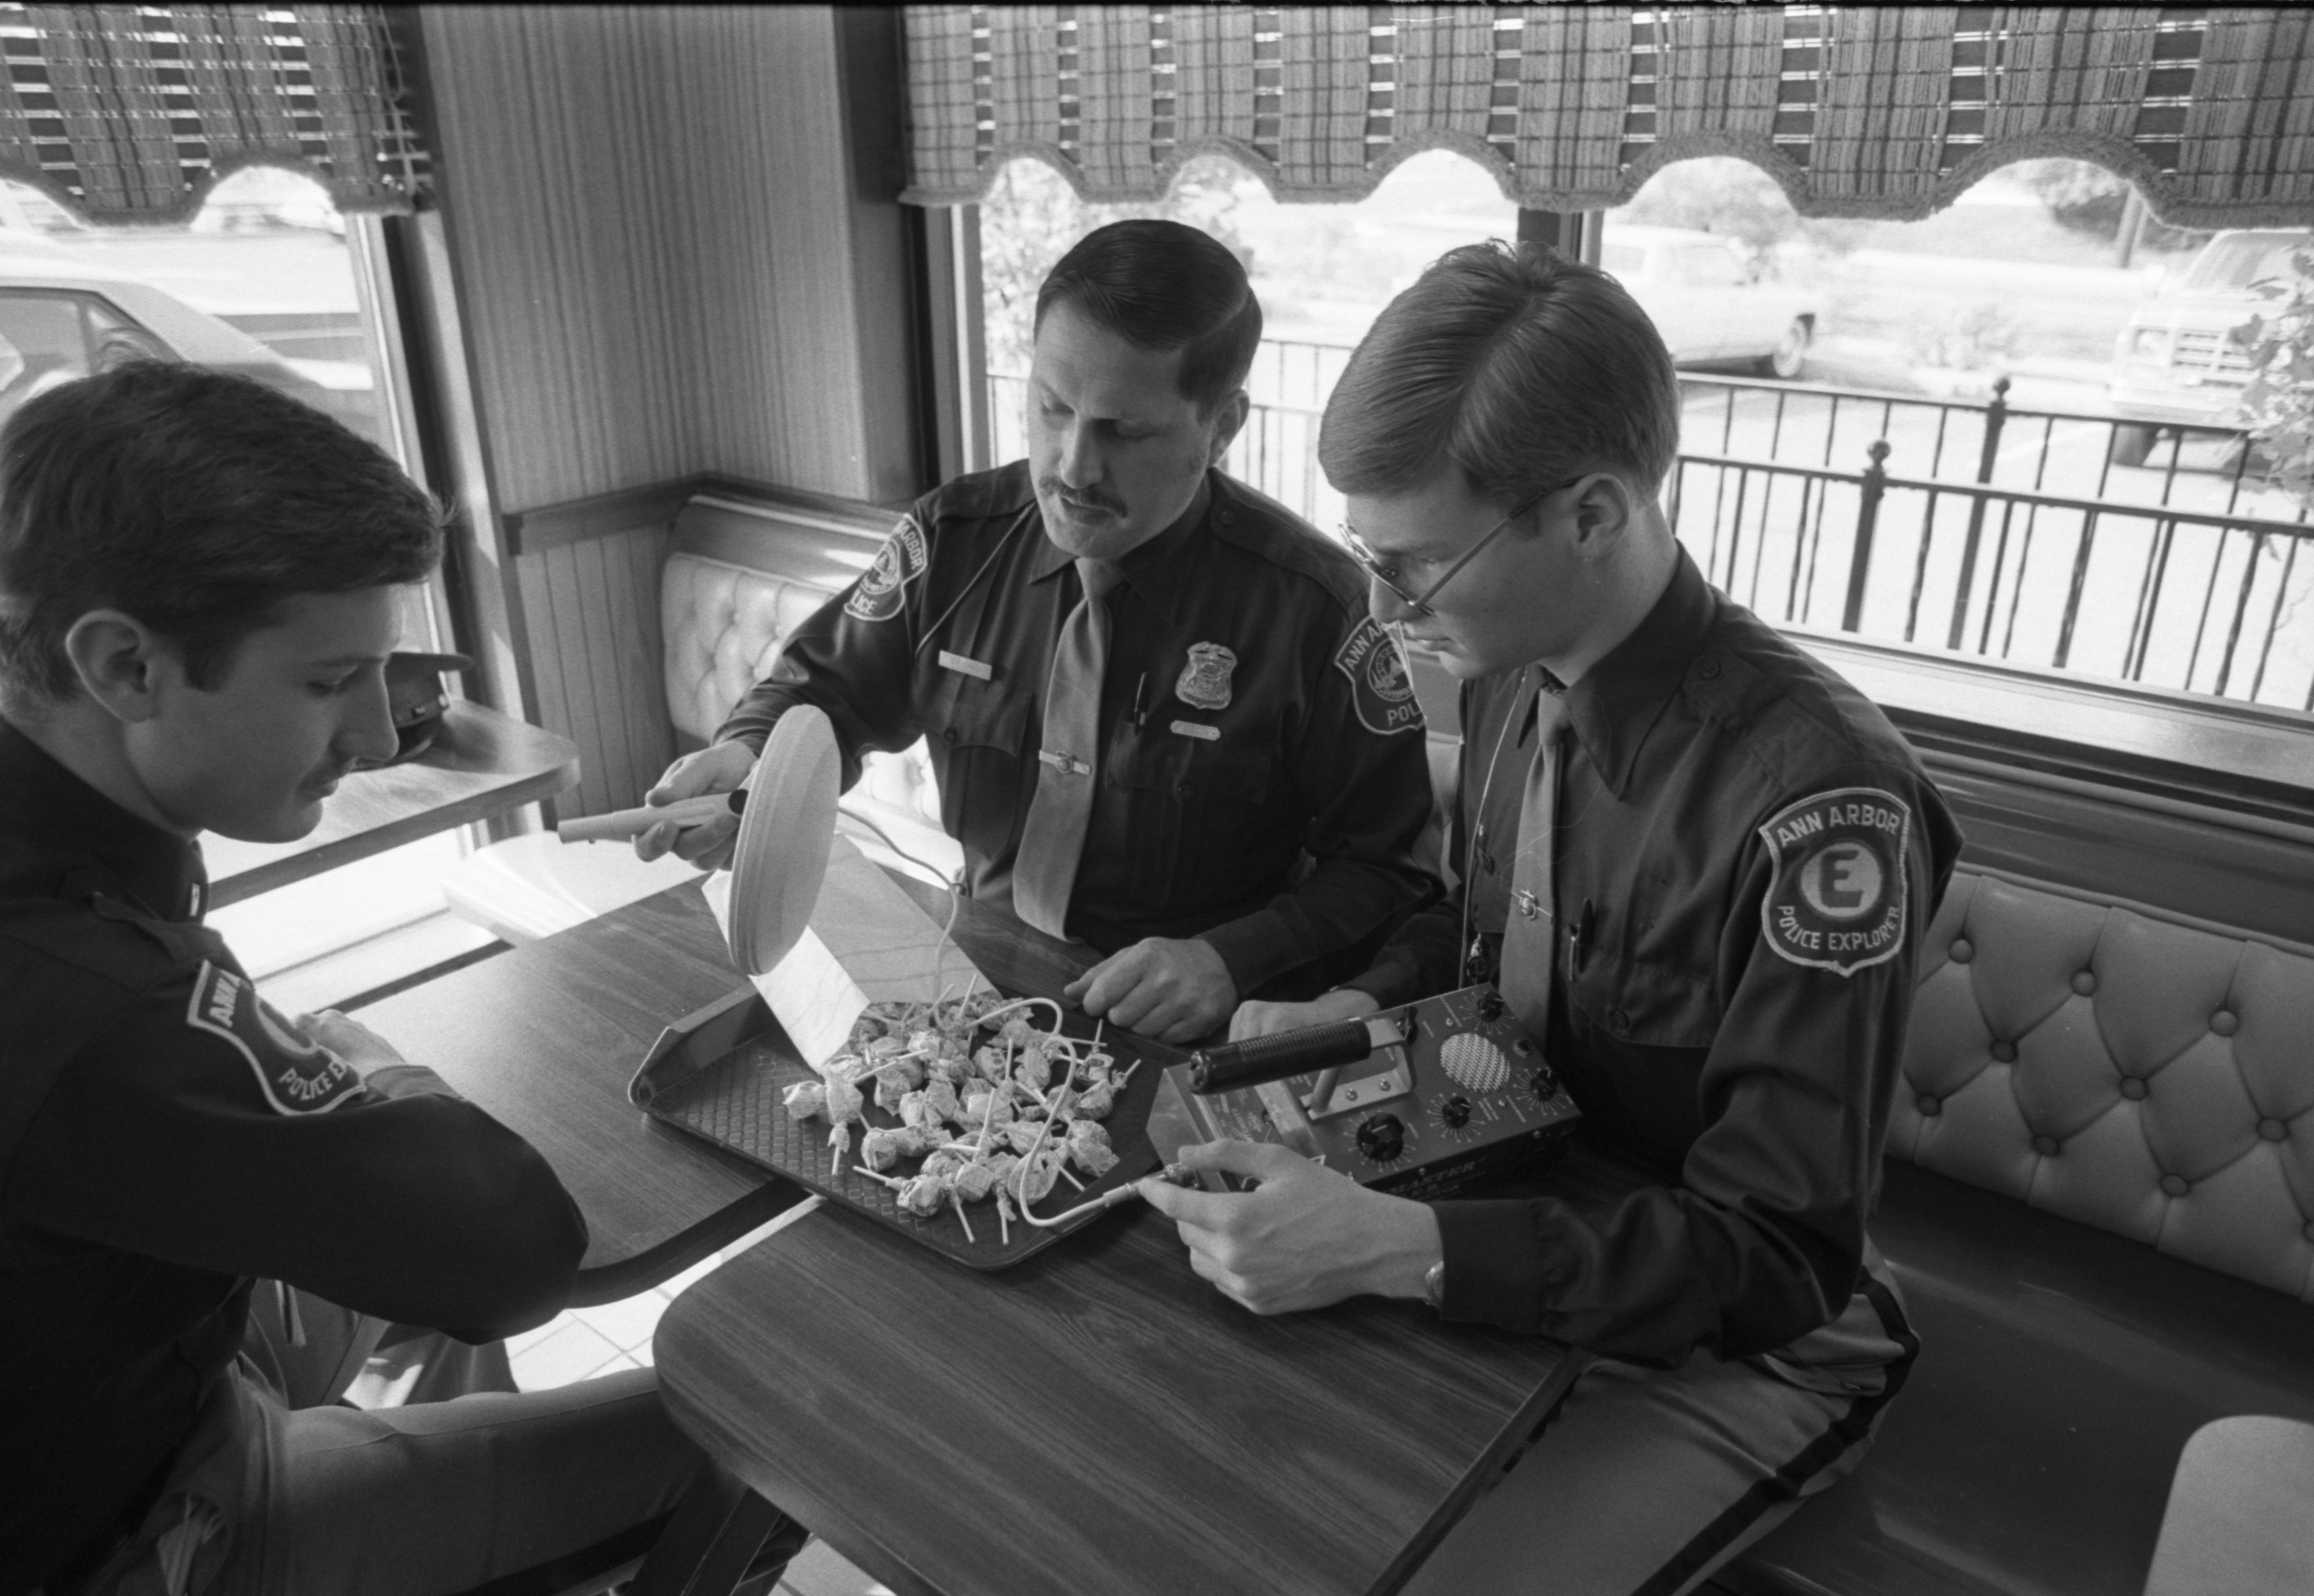 Ann Arbor Police Officer and Explorers Check Halloween Candy With Metal Detector, October 1982 image